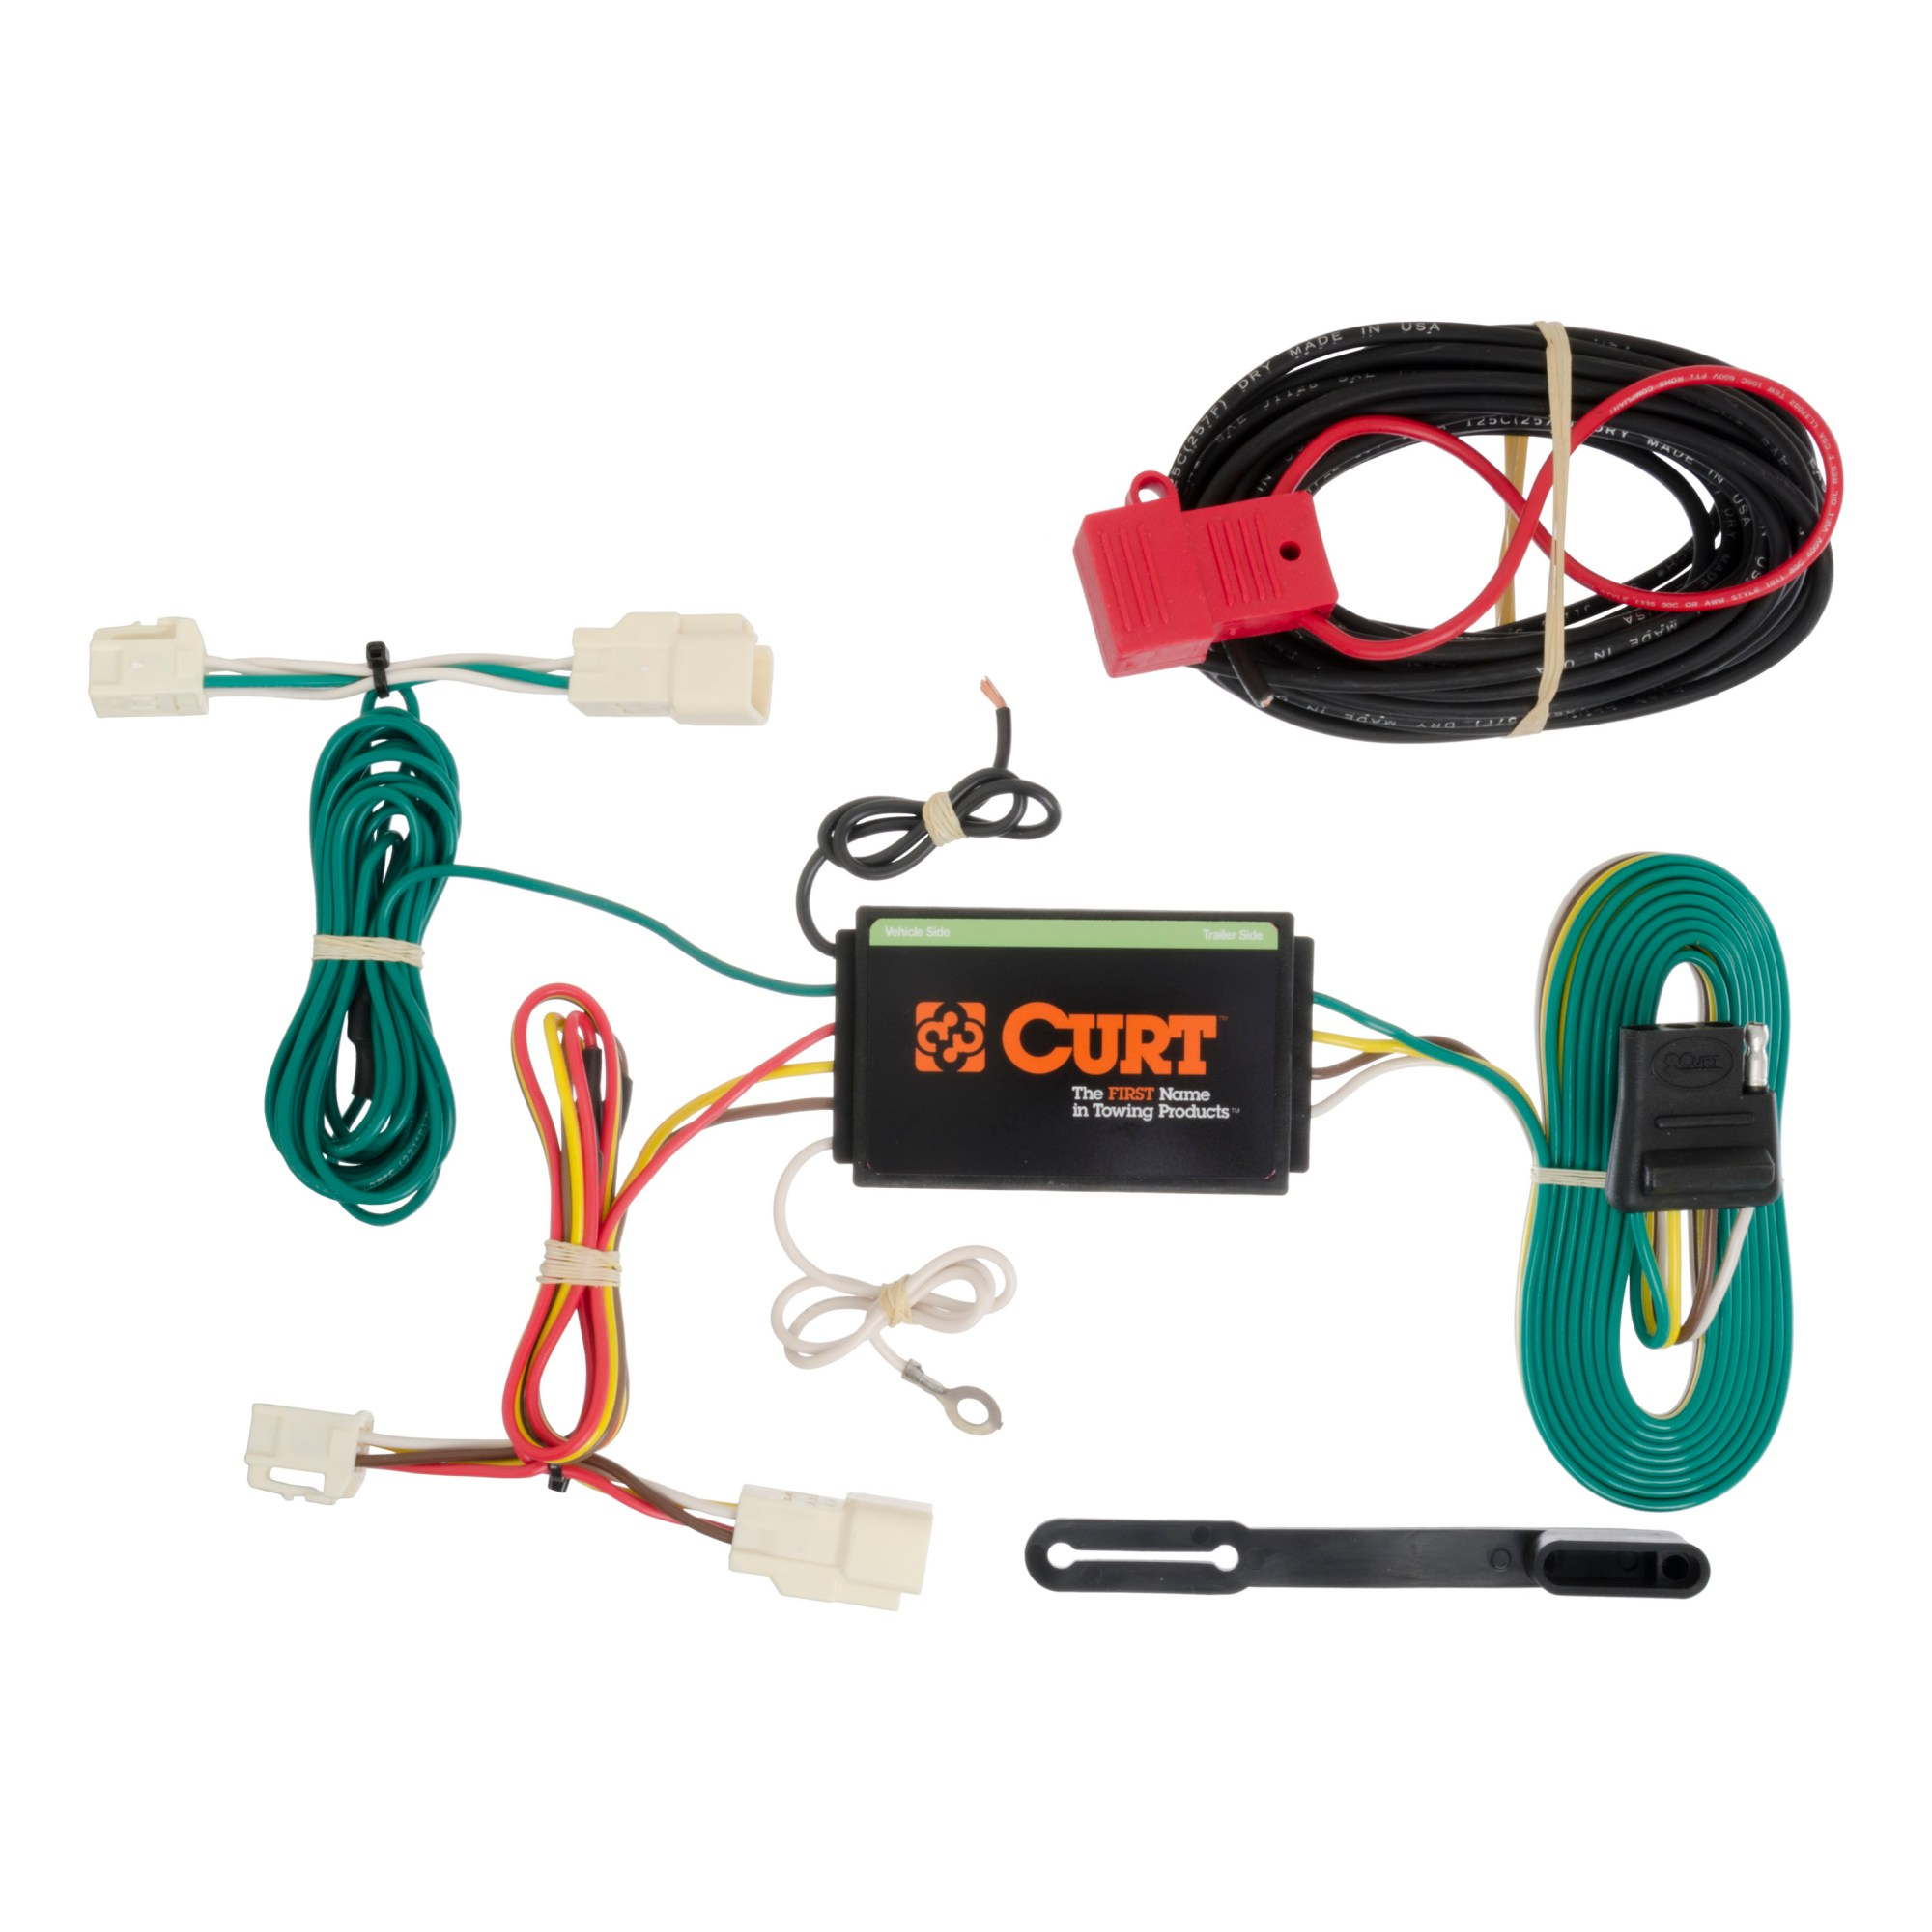 hight resolution of curt vehicle to trailer wiring harness 56189 for 14 16 mitsubishi outlander